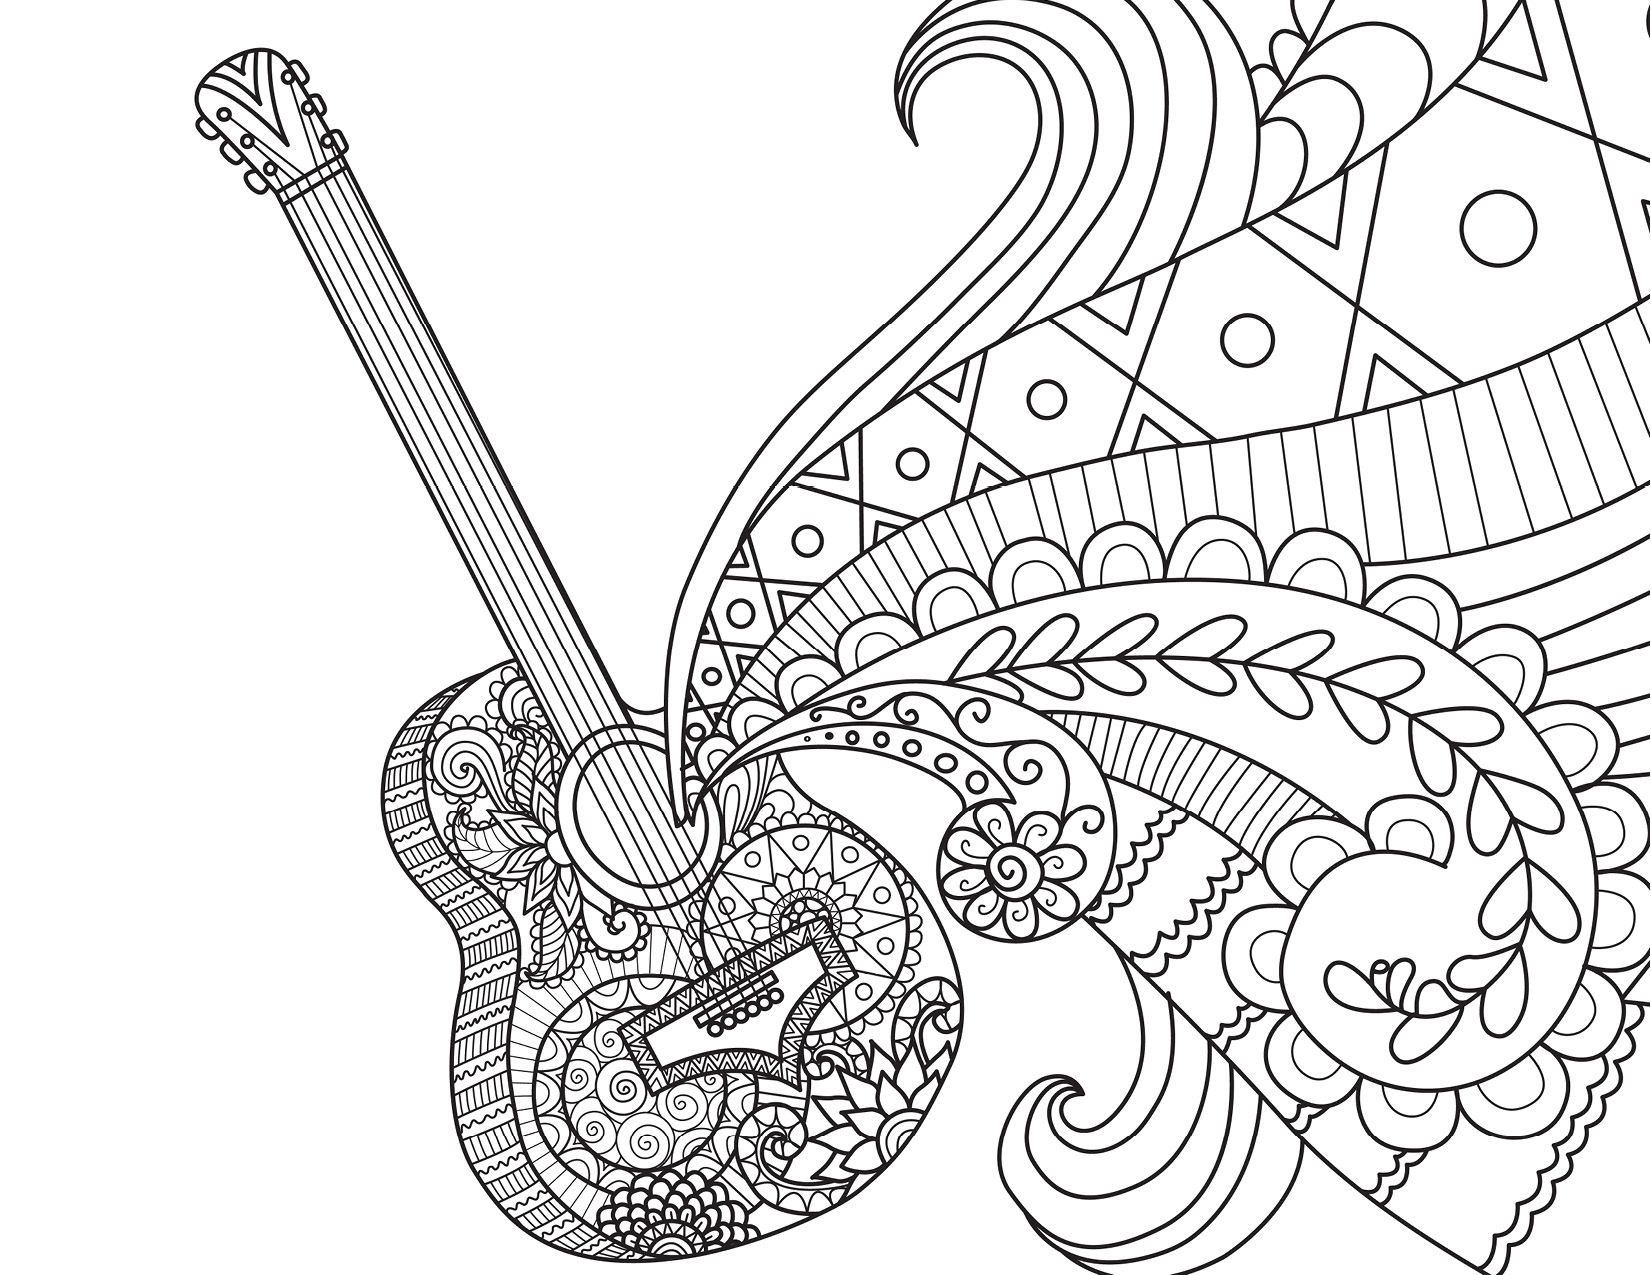 Guitare Disney Coco Movie Musique À Colorier Par Bimbimkha pour Coloriage Guitare